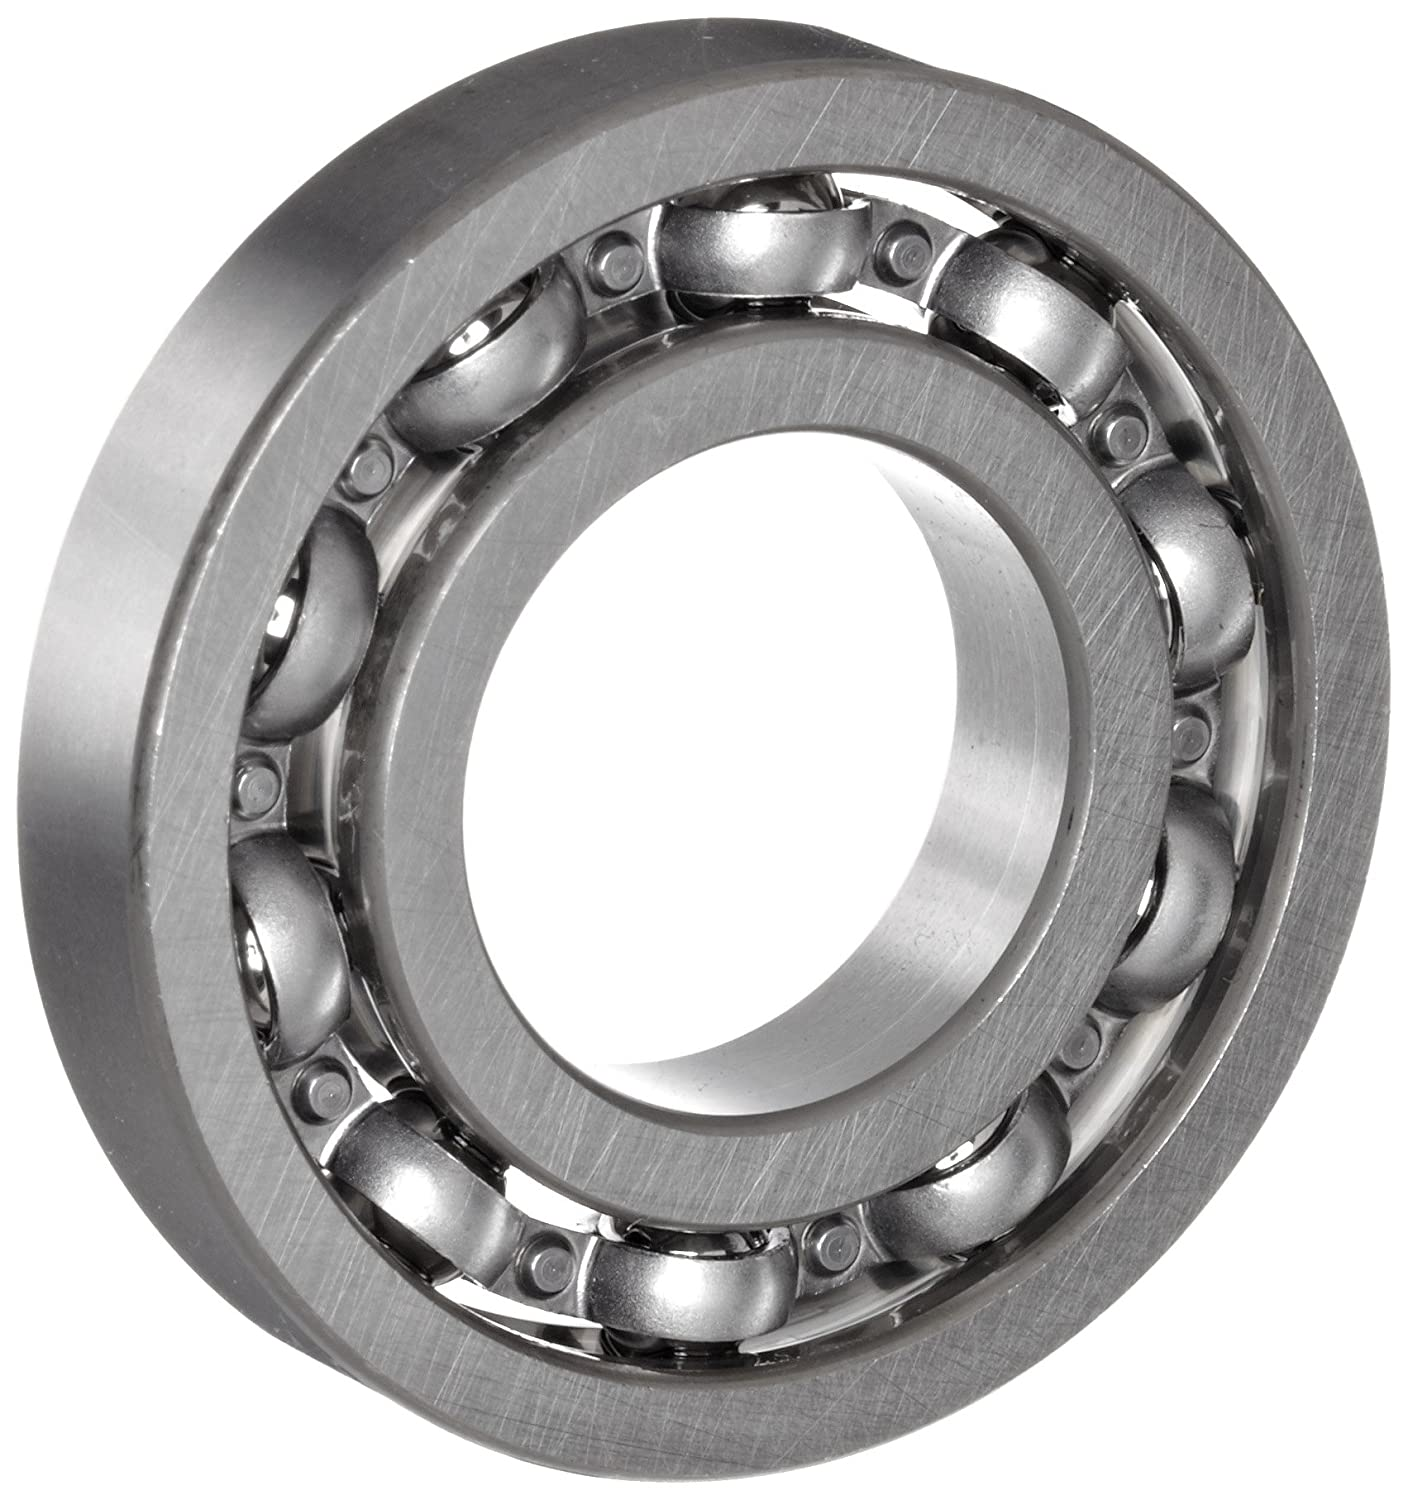 NSK 16018 Deep Groove Ball Bearing, Single Row, Open, Pressed Steel Cage, Normal Clearance, Metric, 90mm Bore, 140mm OD, 16mm Width, 4800rpm Maximum Rotational Speed, 39500N Static Load Capacity, 415000N Dynamic Load Capacity hot sale 1pc 35 15cm cartoon smile naughty pig plush doll hold pillow animal stuffed toy children birthday gift free shipping